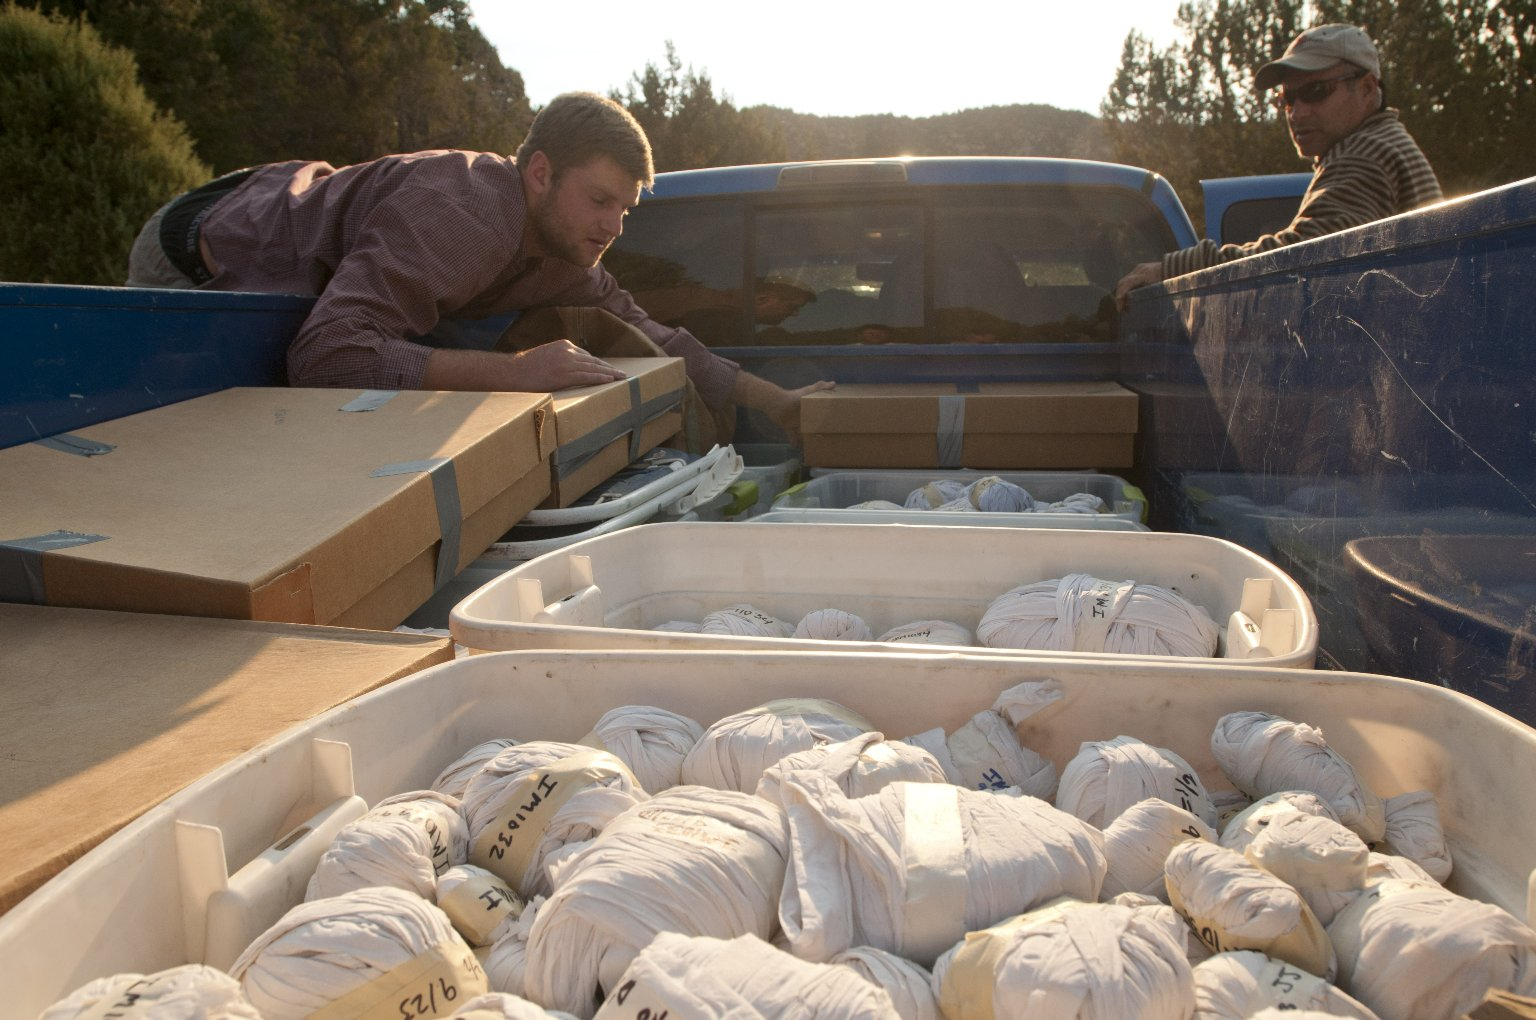 """L-R: DMNS Volunteer David Allen and an unidentified DMNS Volunteer place boxes of specimens on top of the previously loaded bins in the bed of the field truck affectionately known as """"Old Blue""""."""